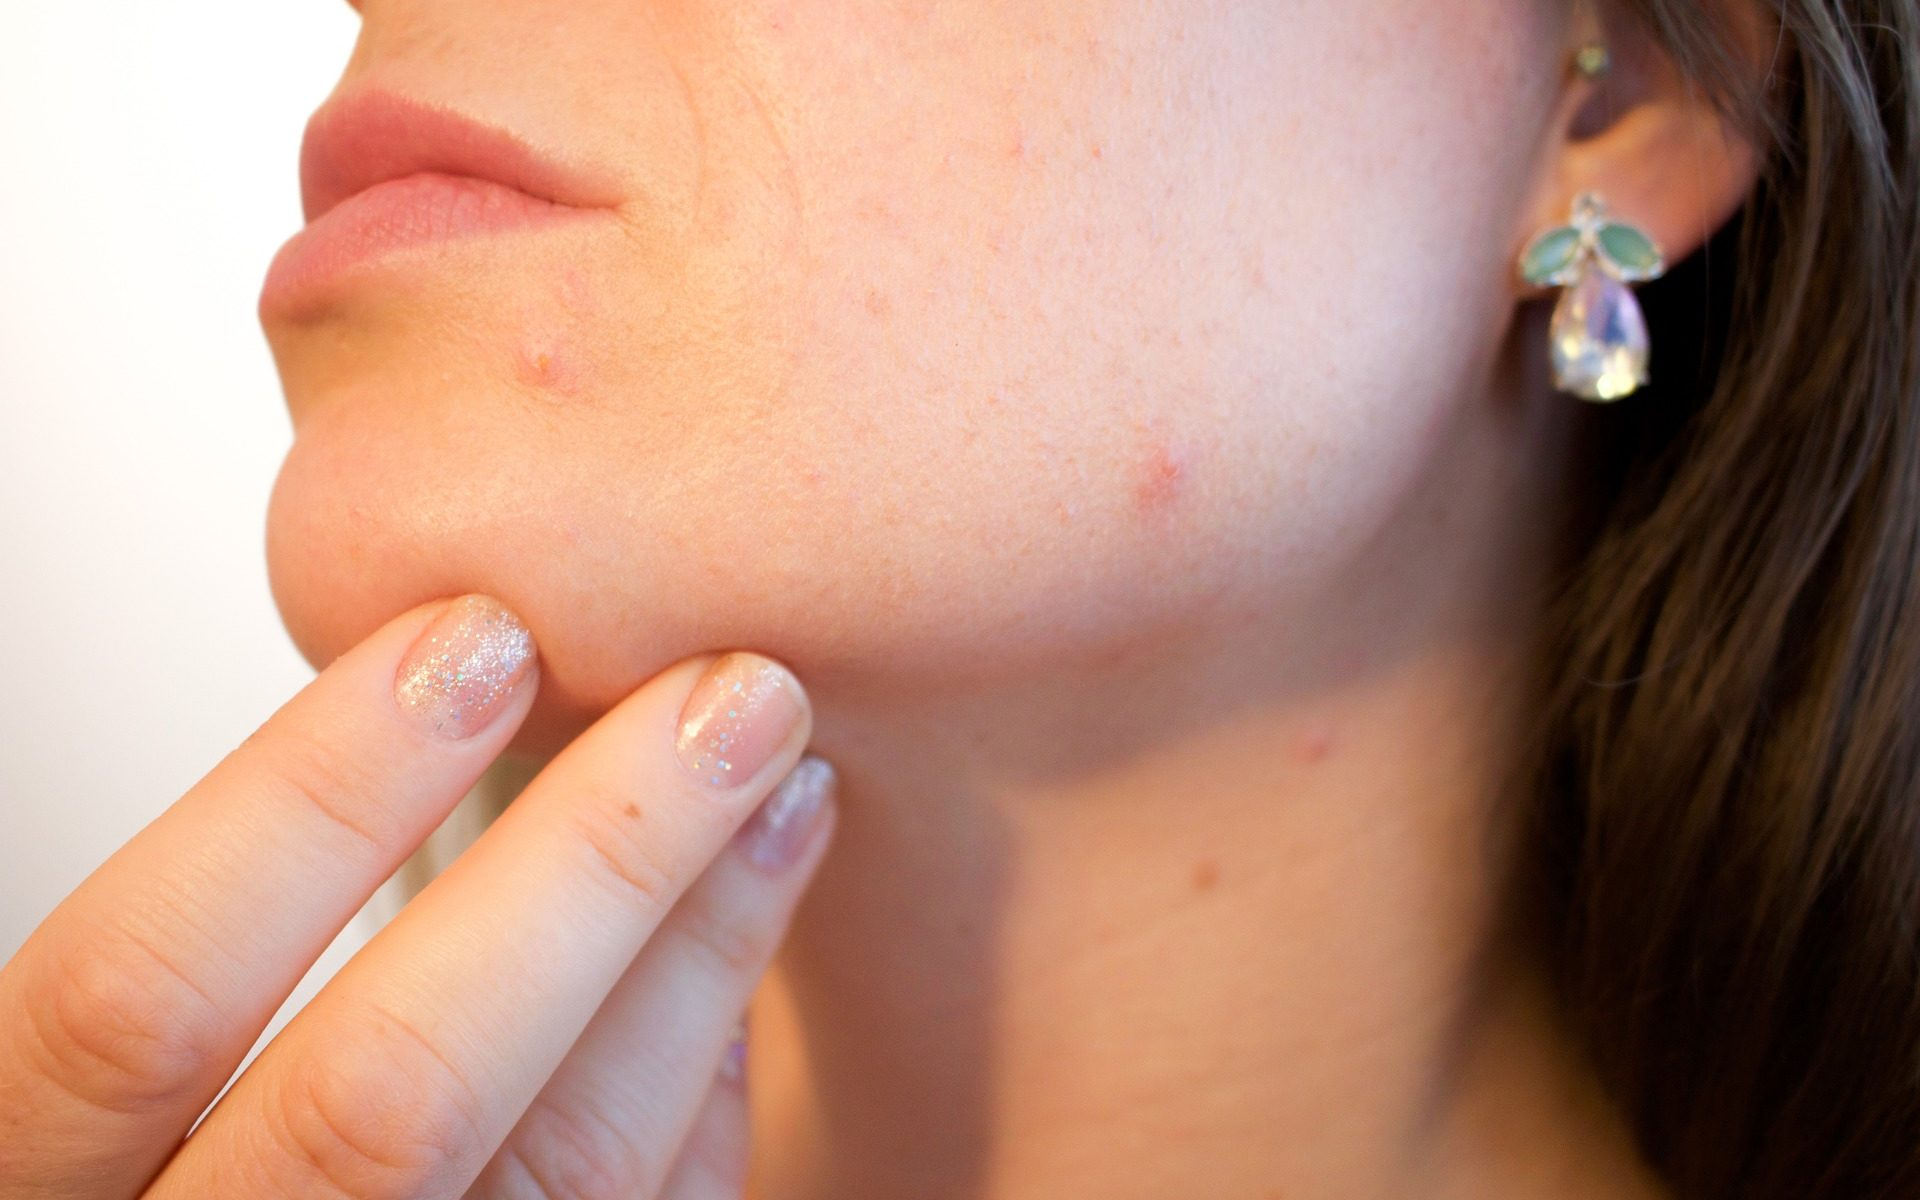 Skin break out Medicine Treatment Found In Natural Acne Products